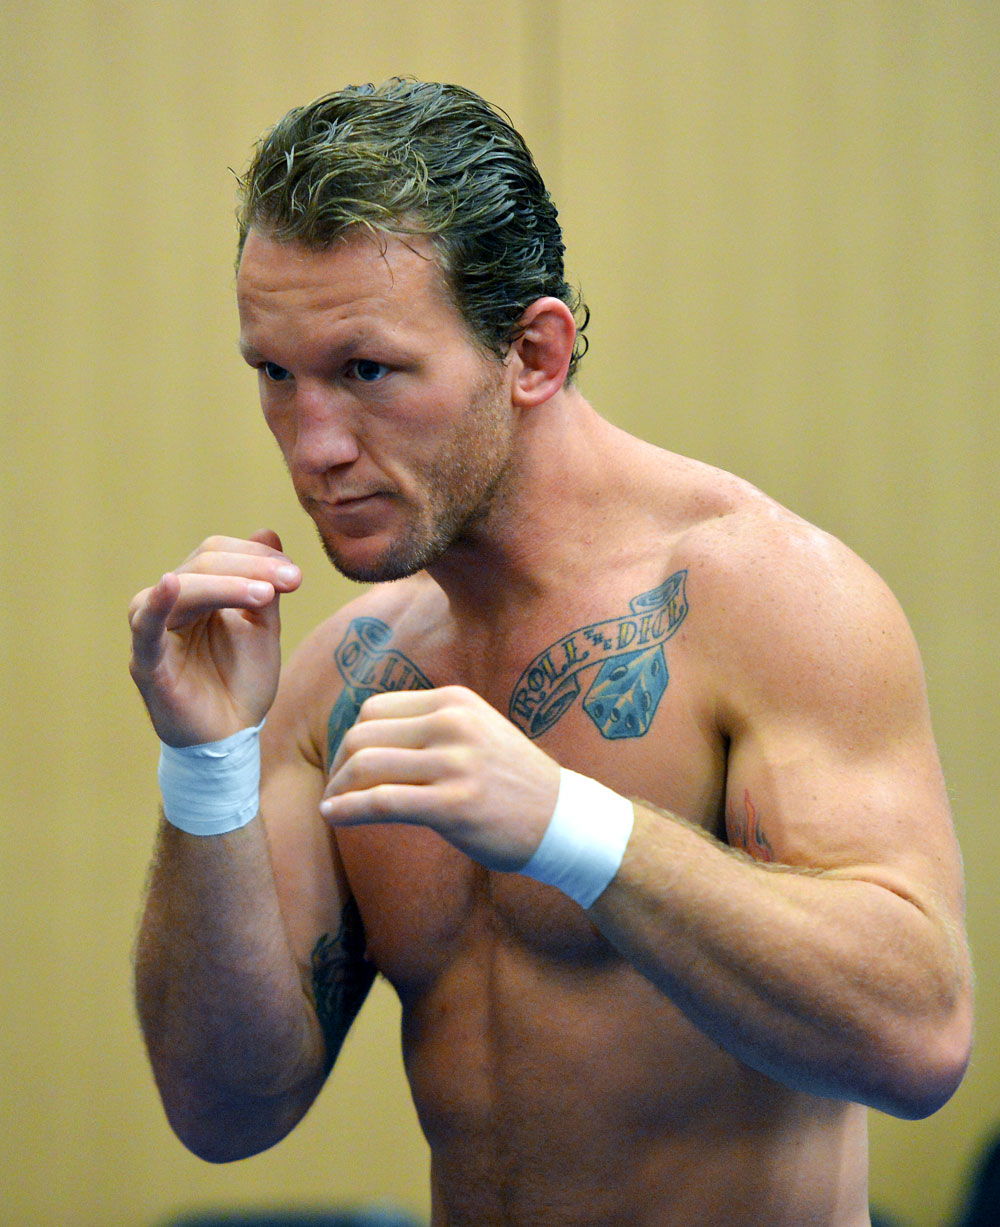 ATLANTIC CITY, NJ - JUNE 20: Gray Maynard trains during an open workout prior to UFC on FX at Revel Casino in Atlantic City, New Jersey. (Photo by Drew Hallowell/Zuffa LLC/Zuffa LLC via Getty Images)